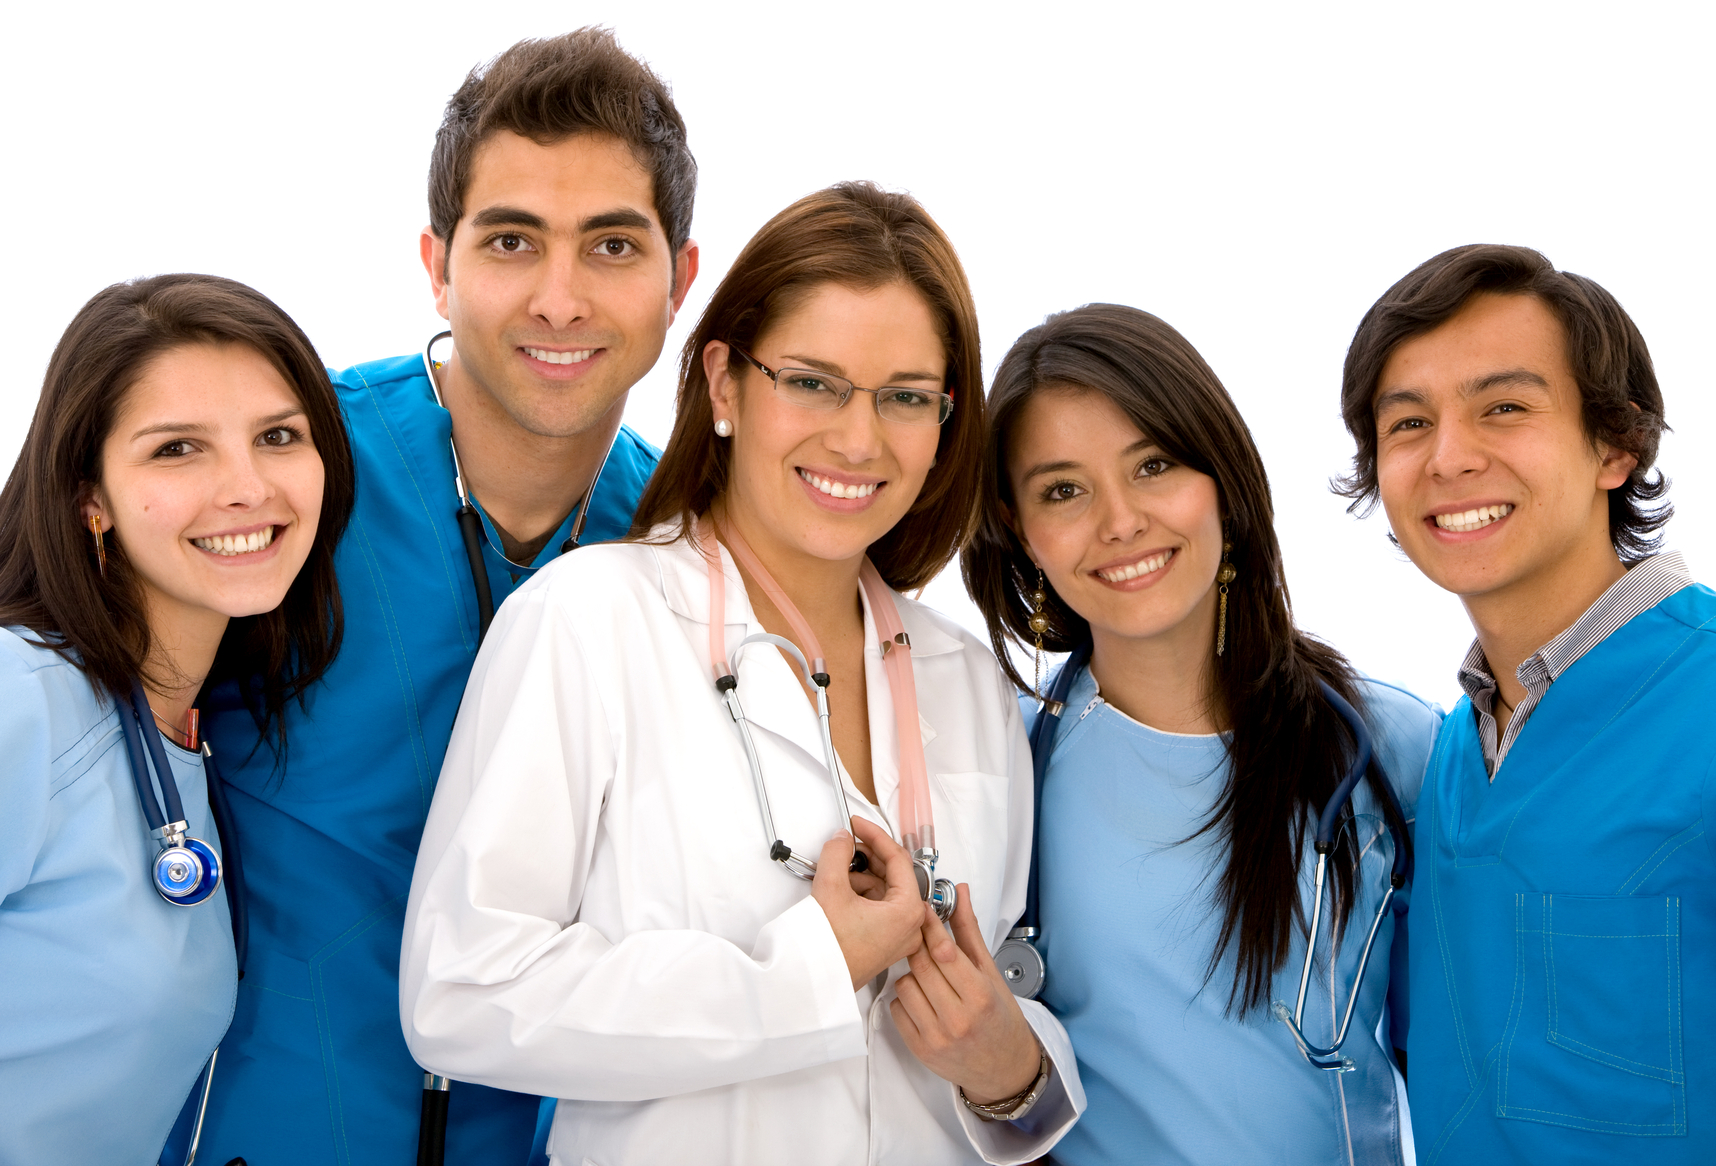 nursing student s perceptions of rural healthcare Clinical preceptor/undergraduate nursing student relationship and the relevance  enter the healthcare system, representing a  with clinical supervisors can shape a student's perceptions of.